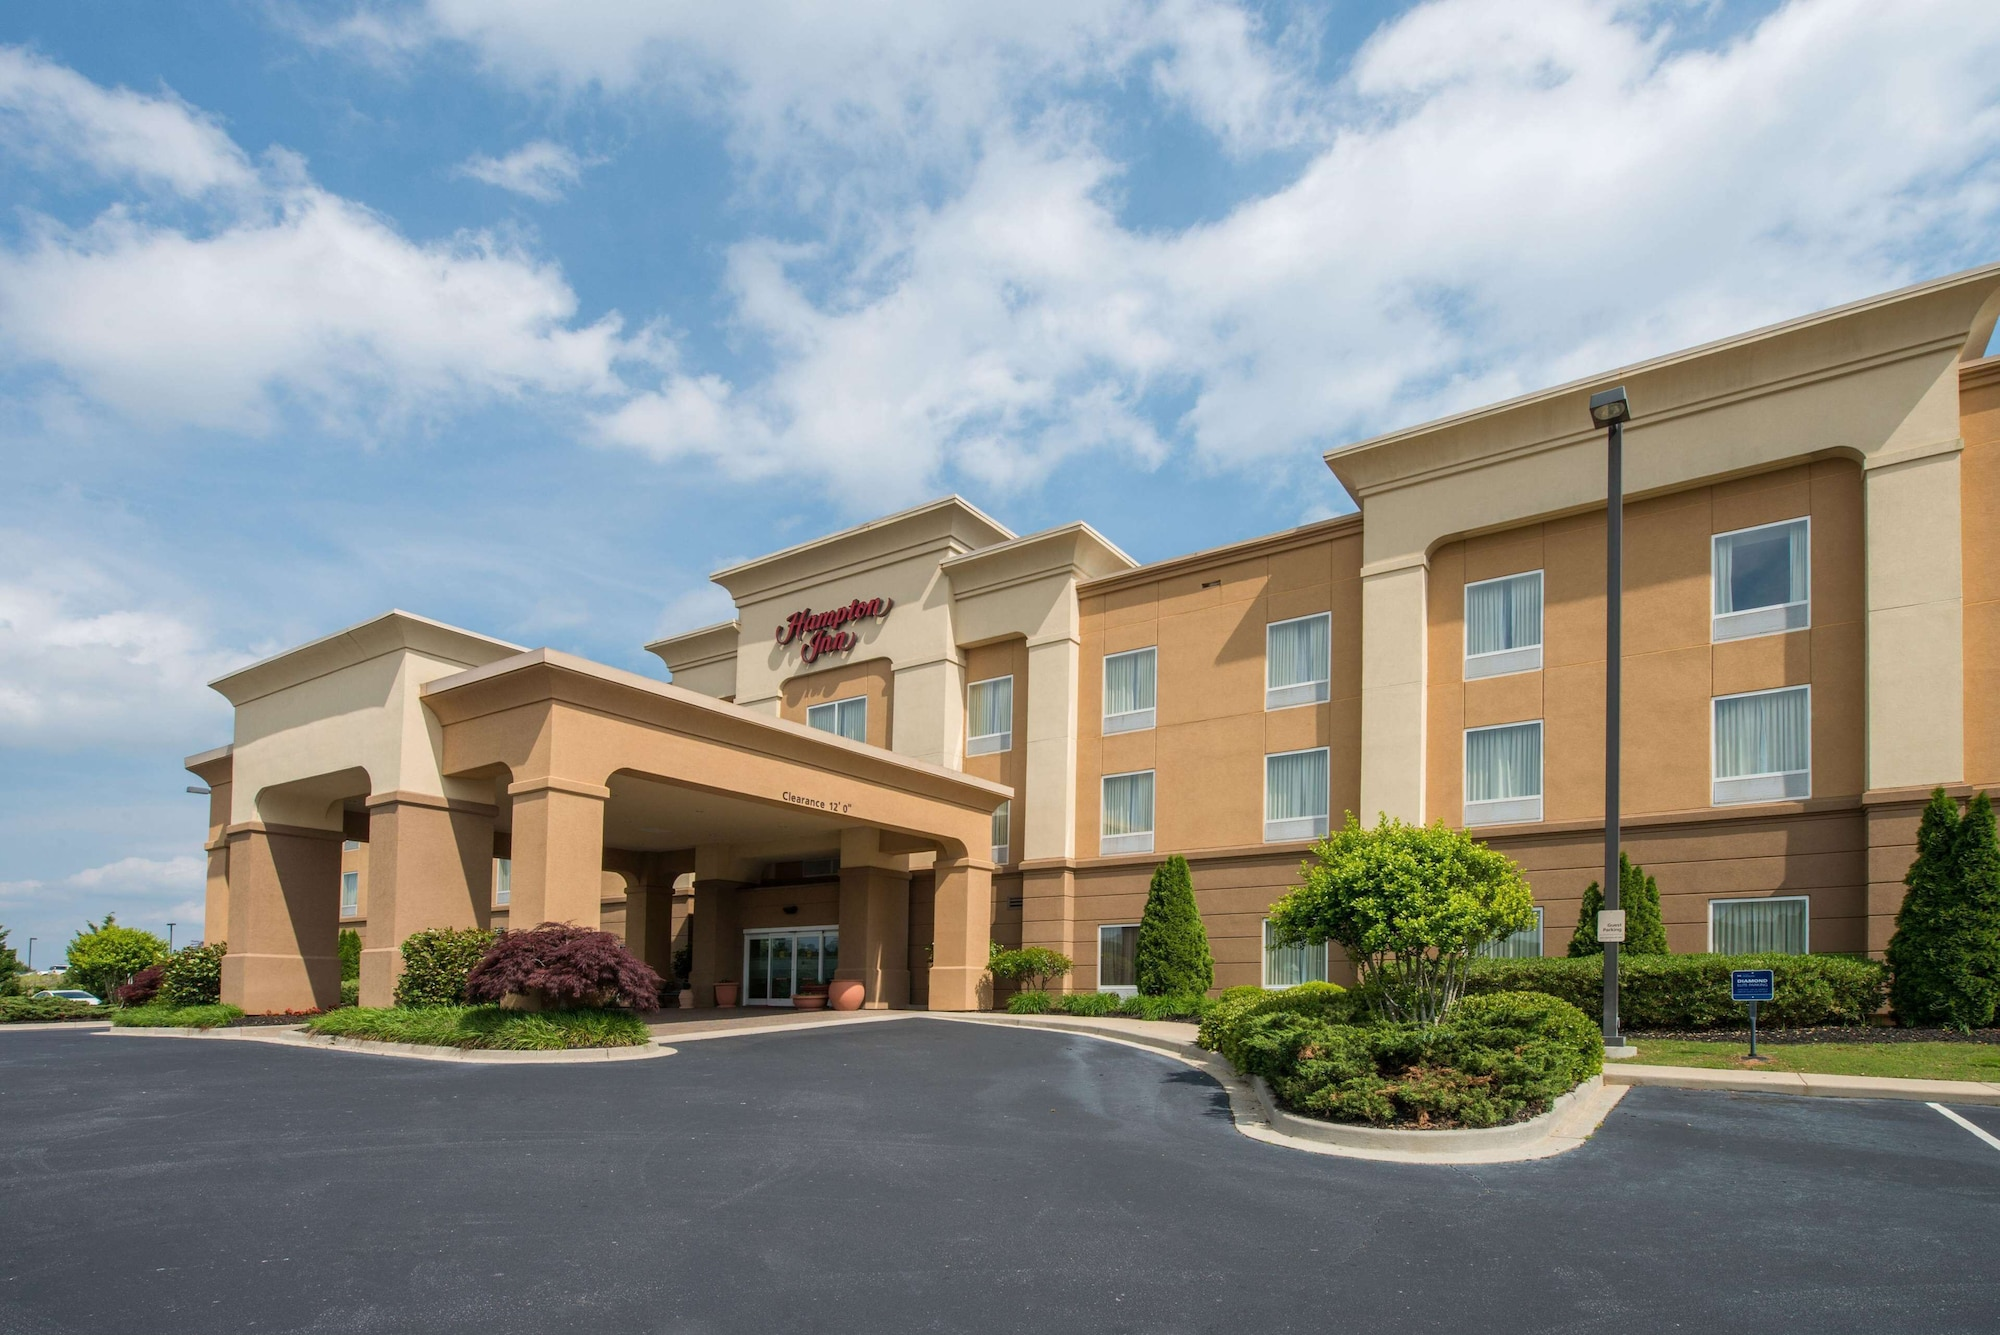 Hampton Inn Easley, Pickens